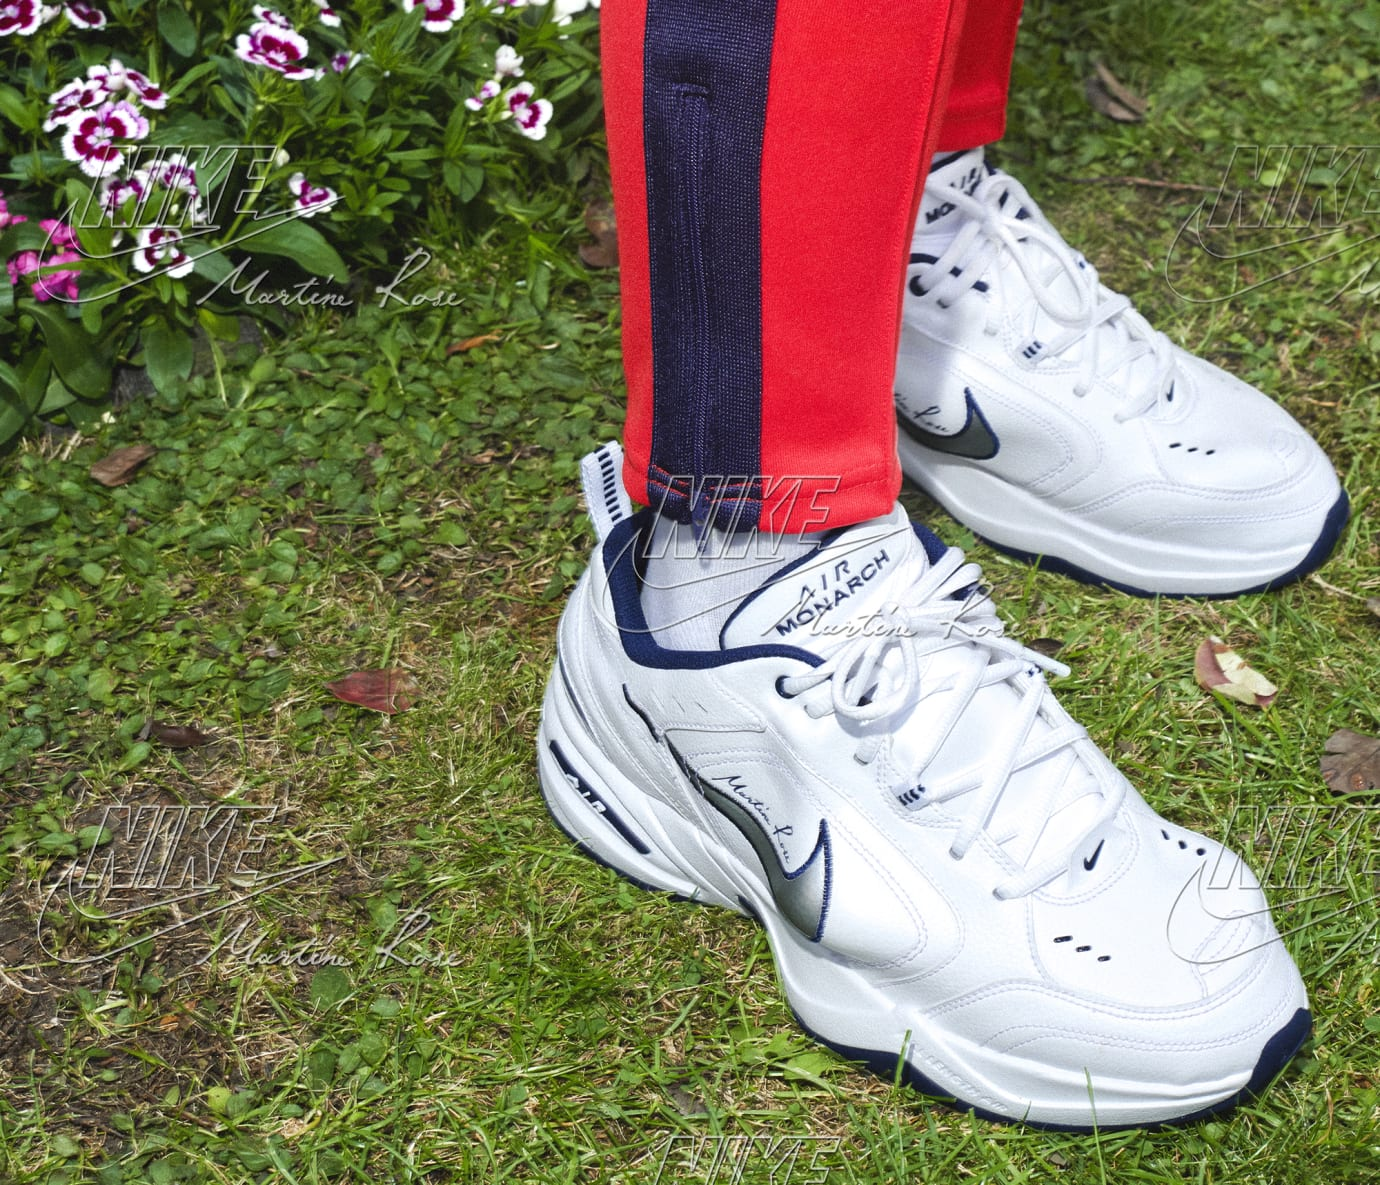 hot sale online 31c5b 55707 Image via Nike Martine Rose x Nike Air Monarch Collection 3